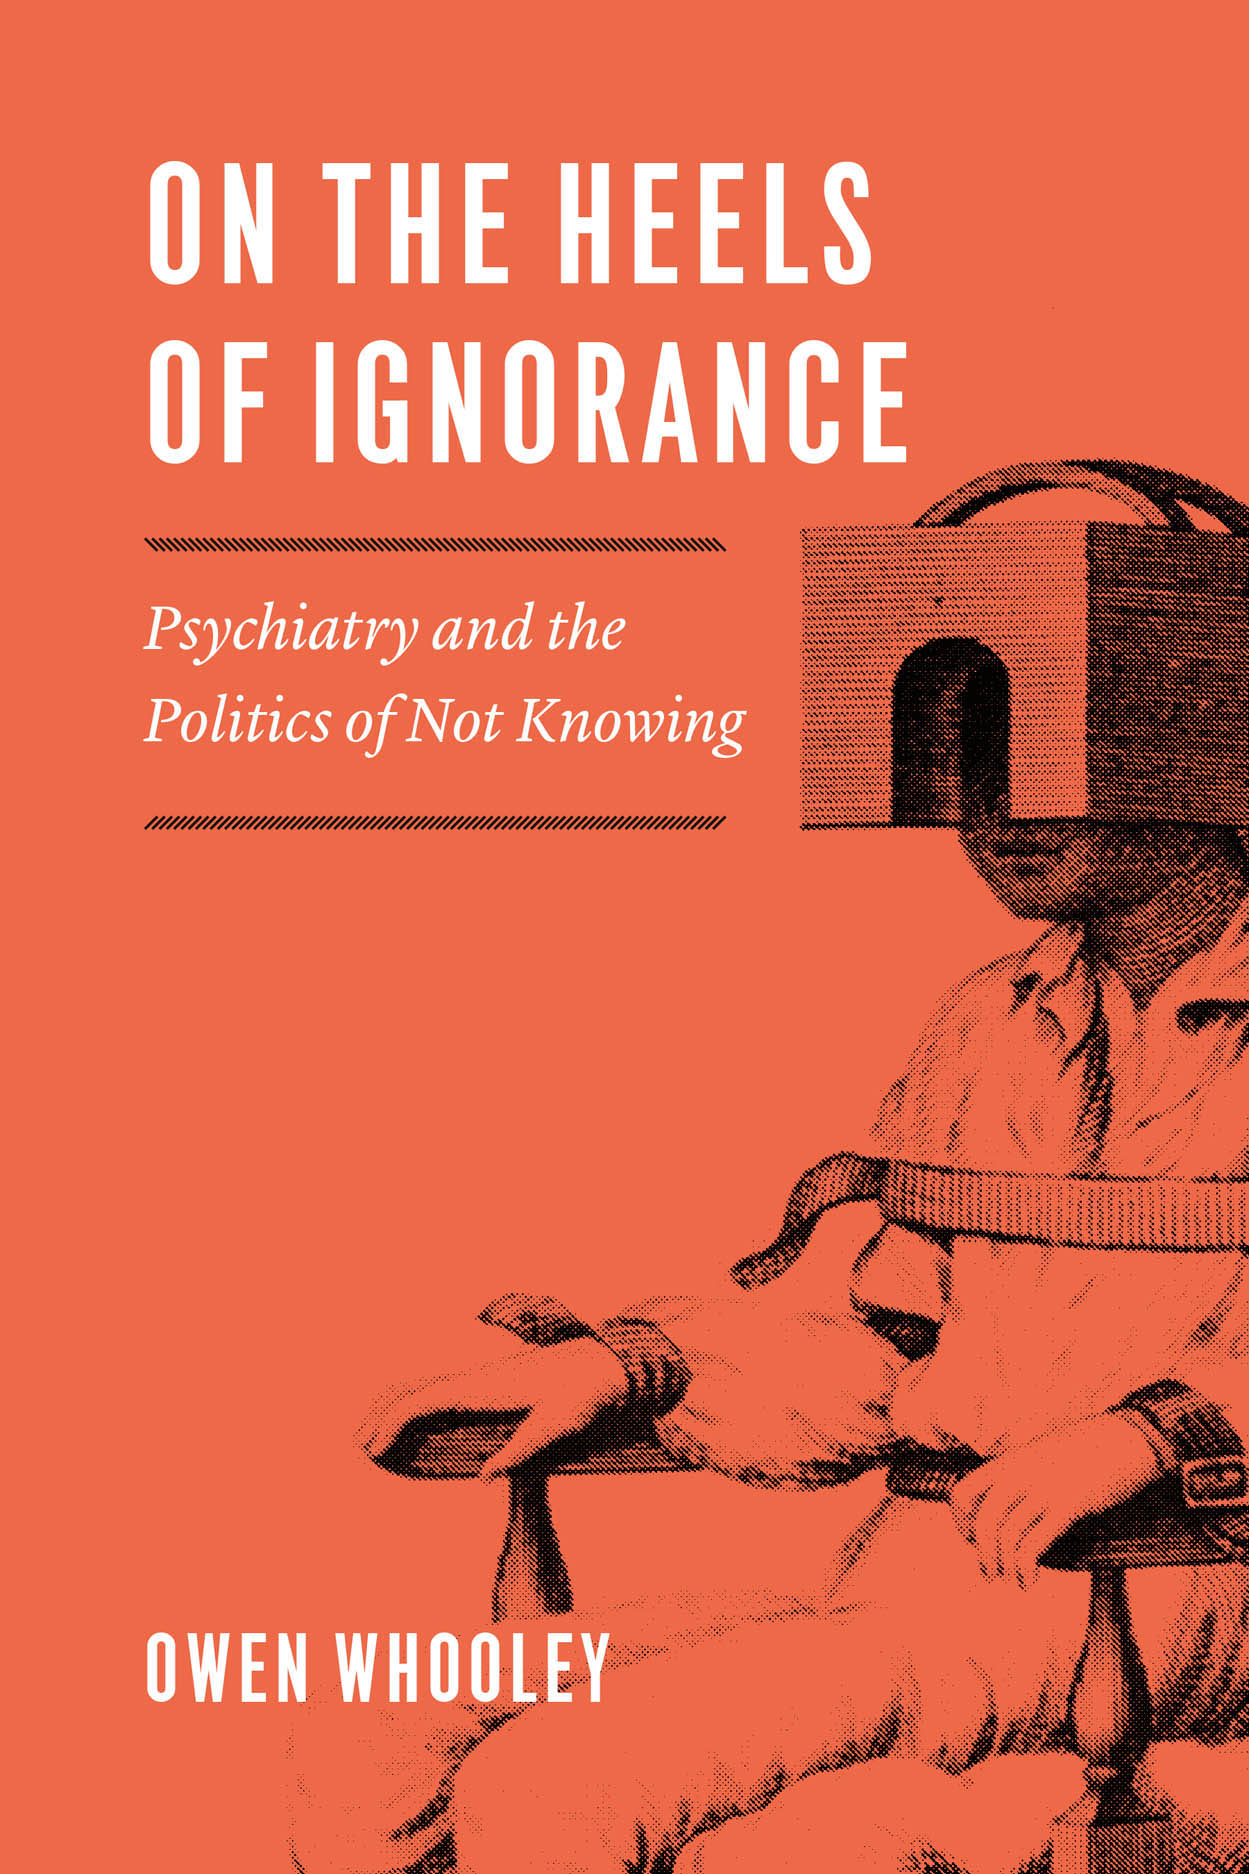 On the Heels of Ignorance: Psychiatry and the Politics of Not Knowing